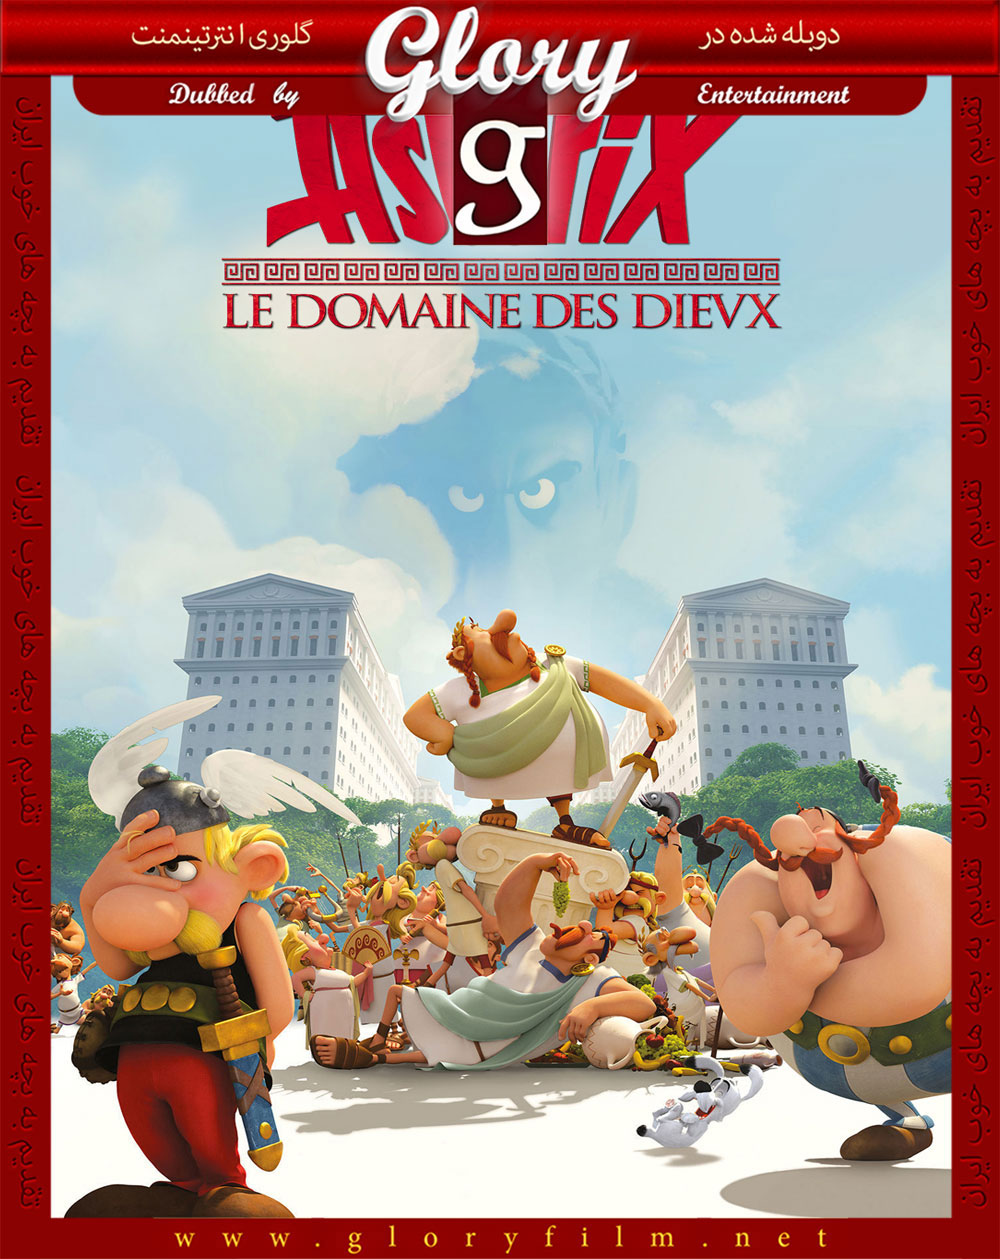 Asterix and Obelix Mansion of the Gods glorydubbed cover small دانلود دوبله فارسی گلوری آستریکس و عمارت فرمانروایان Asterix and Obelix Mansion of the Gods 2014